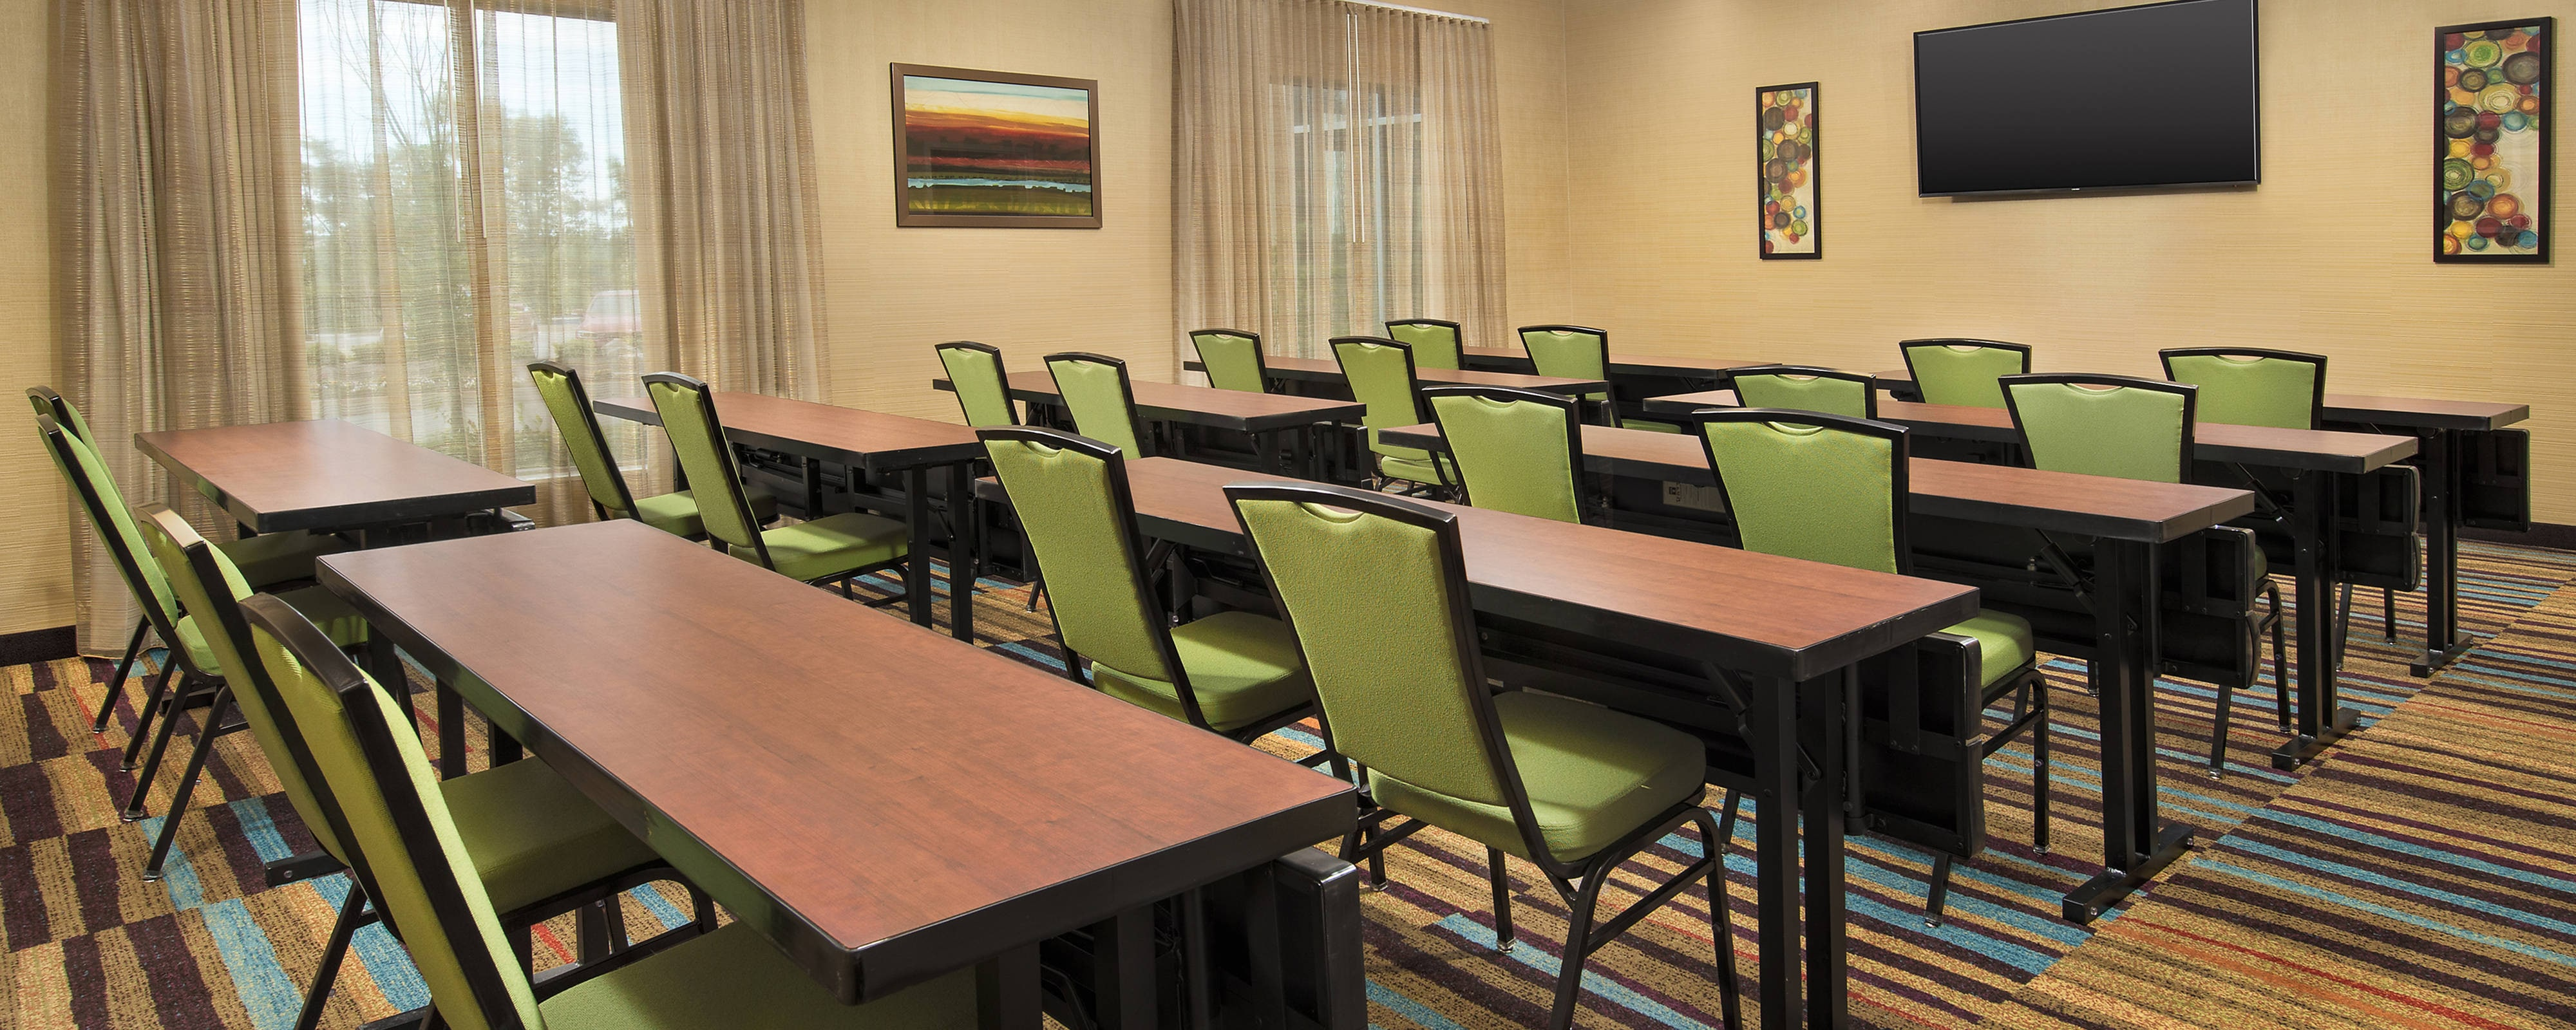 Hotels In Knoxville Tn With Meeting Rooms